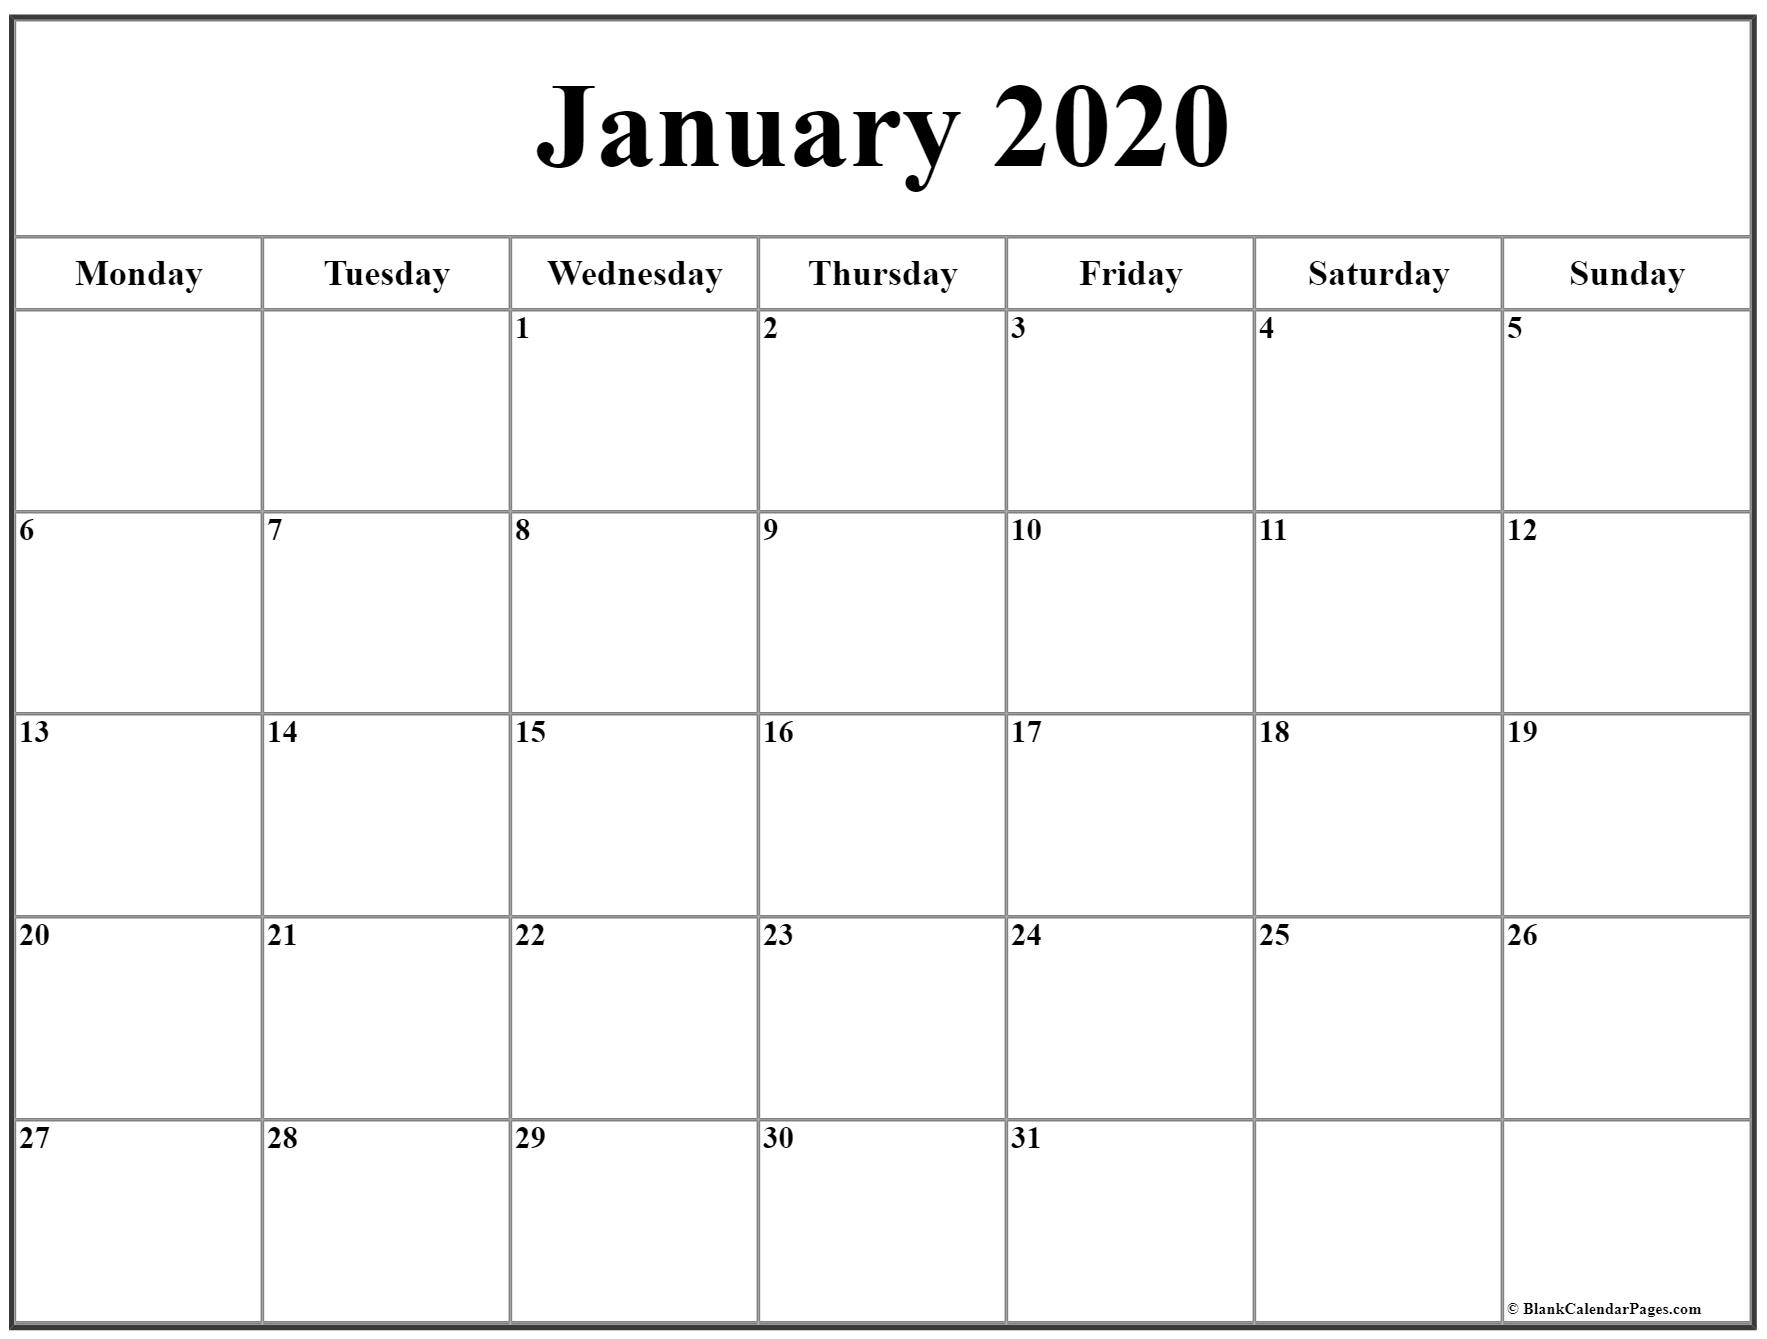 January 2020 Monday Calendar | Monday To Sunday intended for Monday Thru Friday Calendar